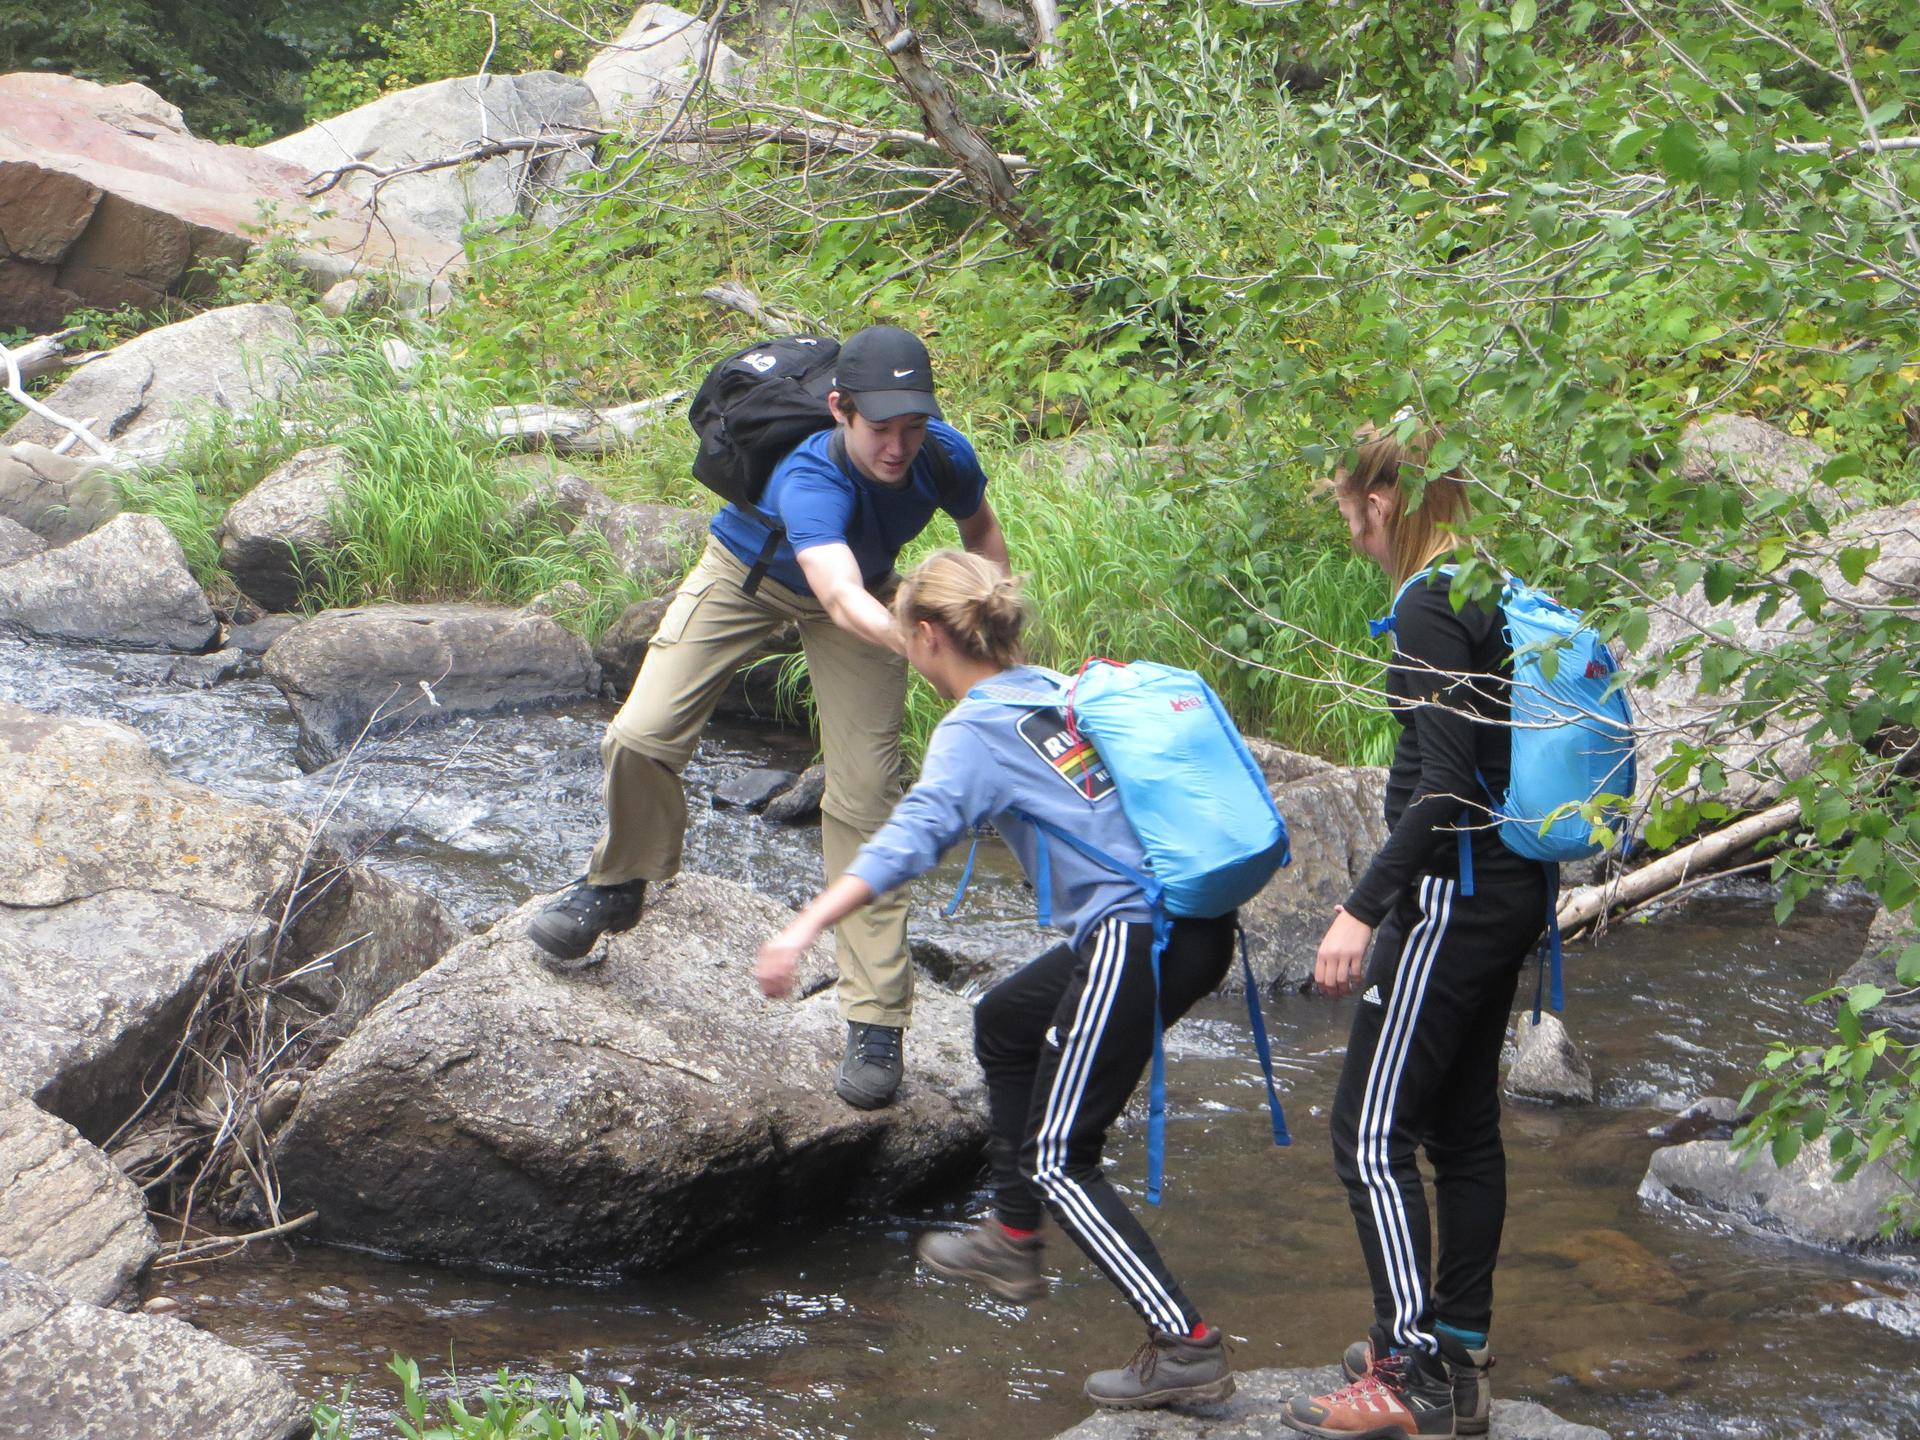 One student helps two others cross a stream